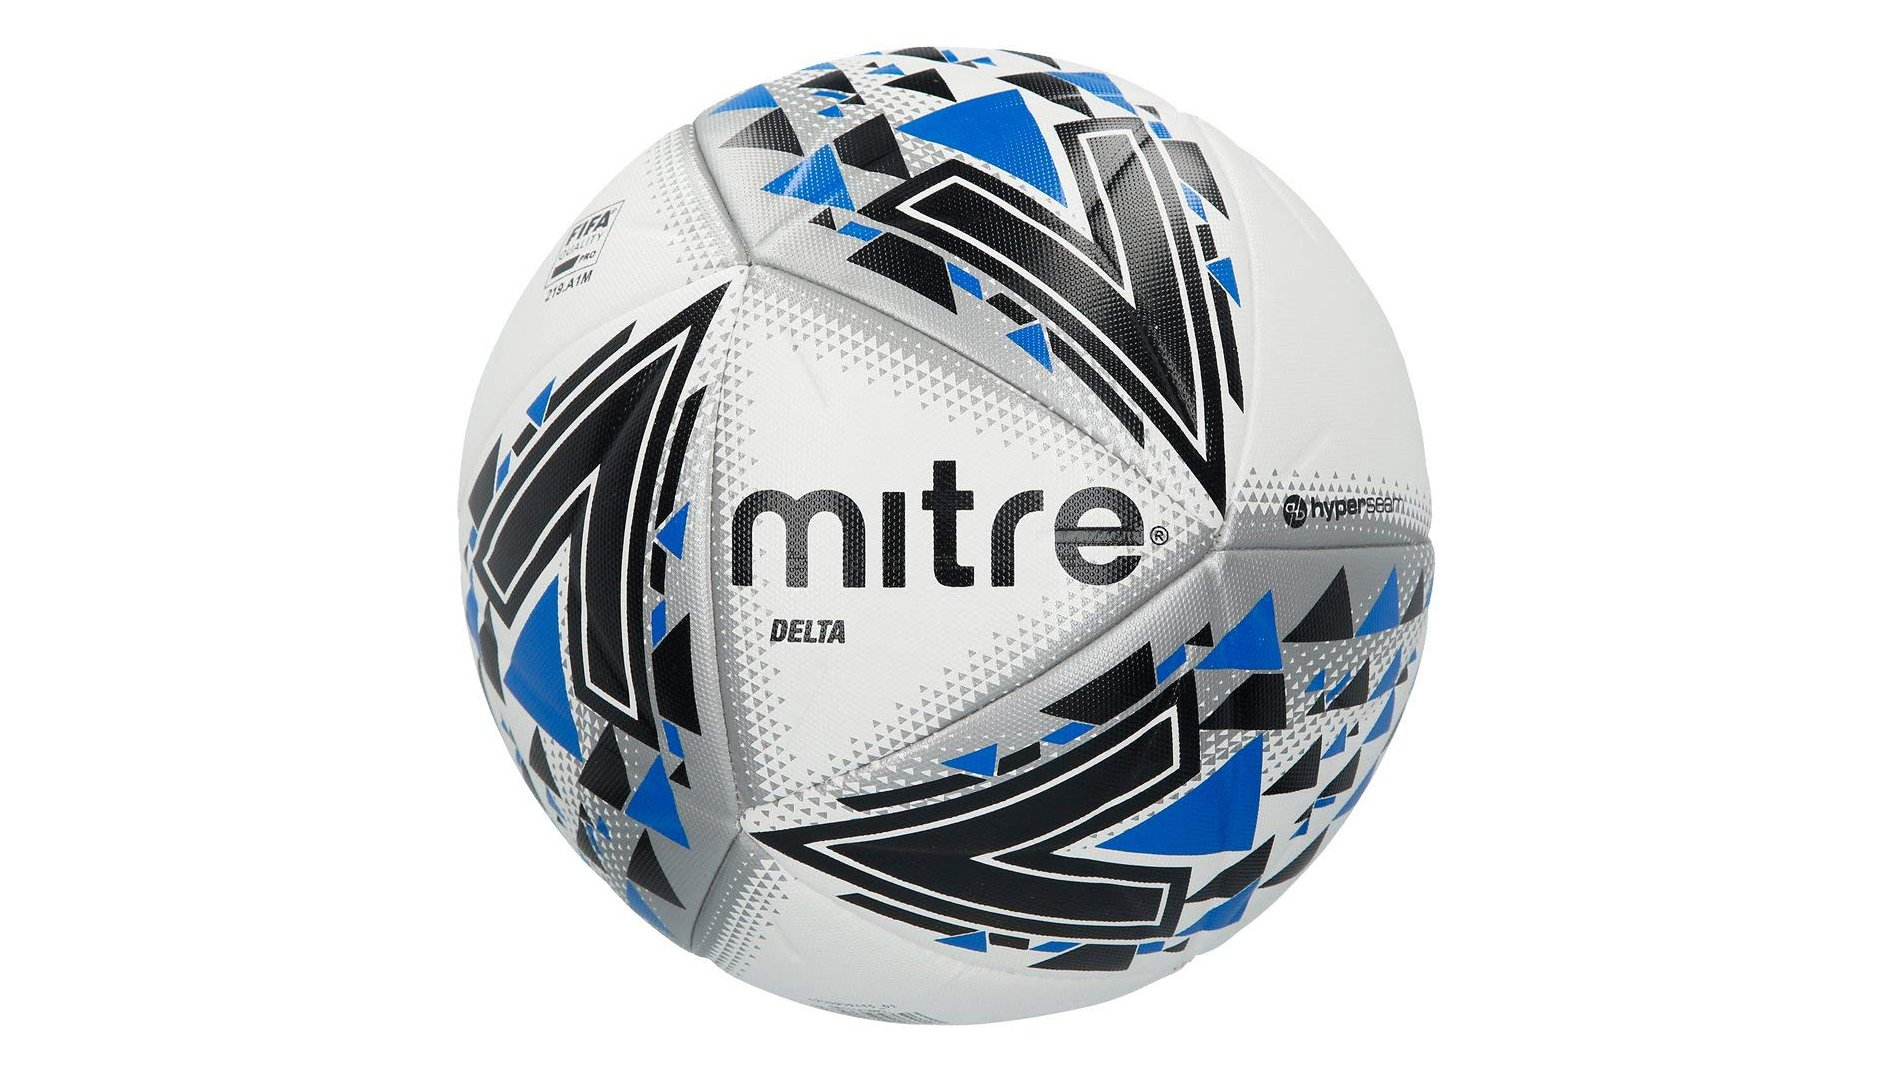 bf054dcaf5f It boasts the FIFA Pro Quality accreditation mark of a top-level ball but  at ...